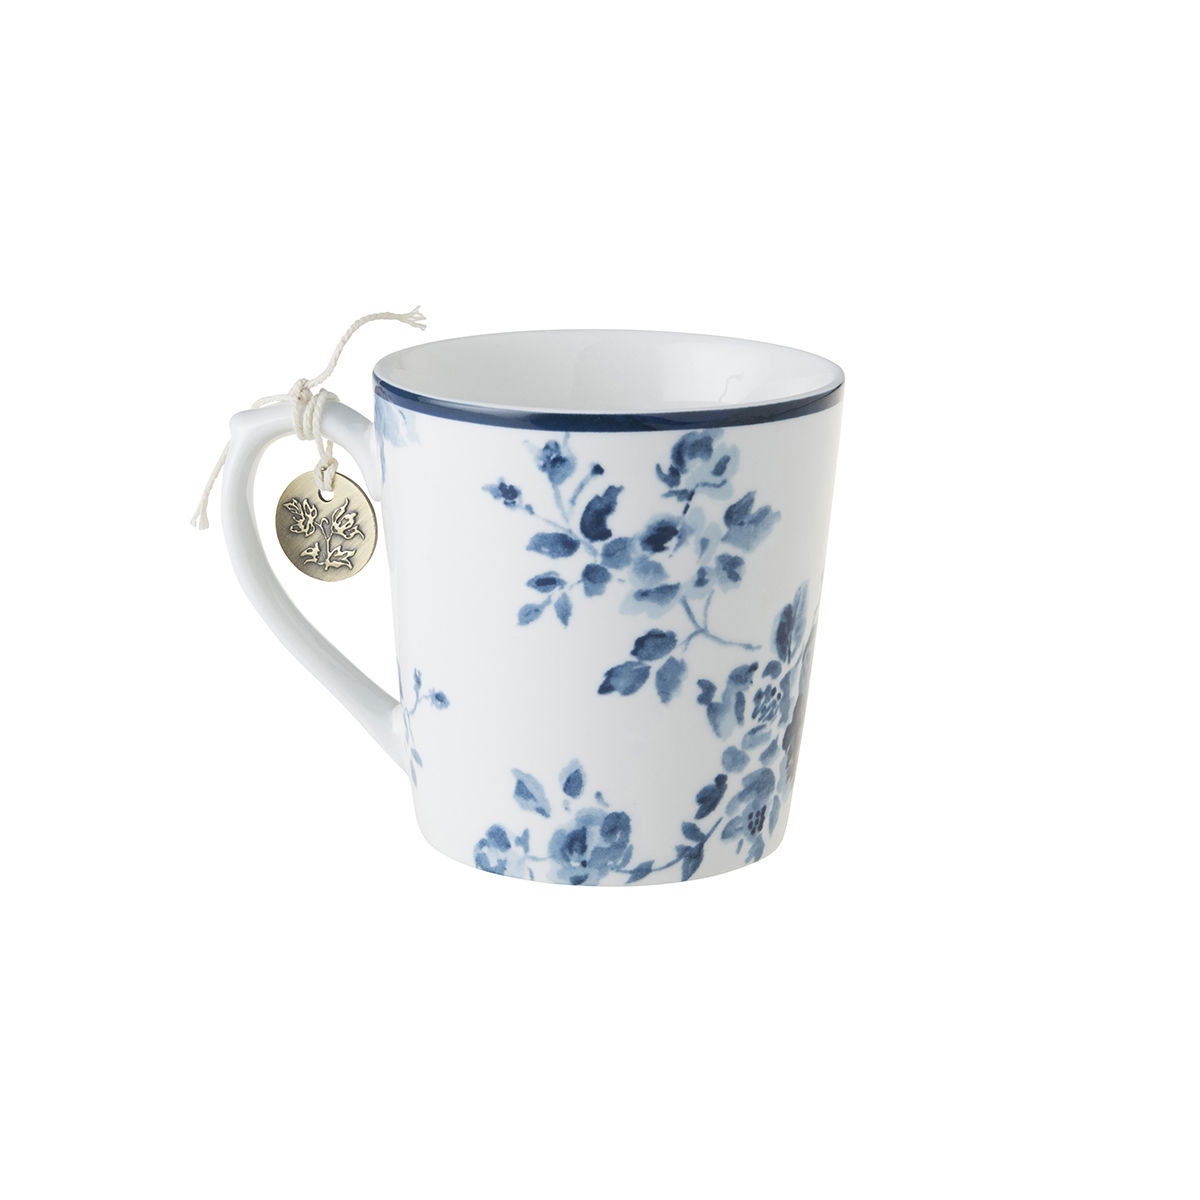 Laura Ashley Mug 10oz China Rose Pattern - product images  of